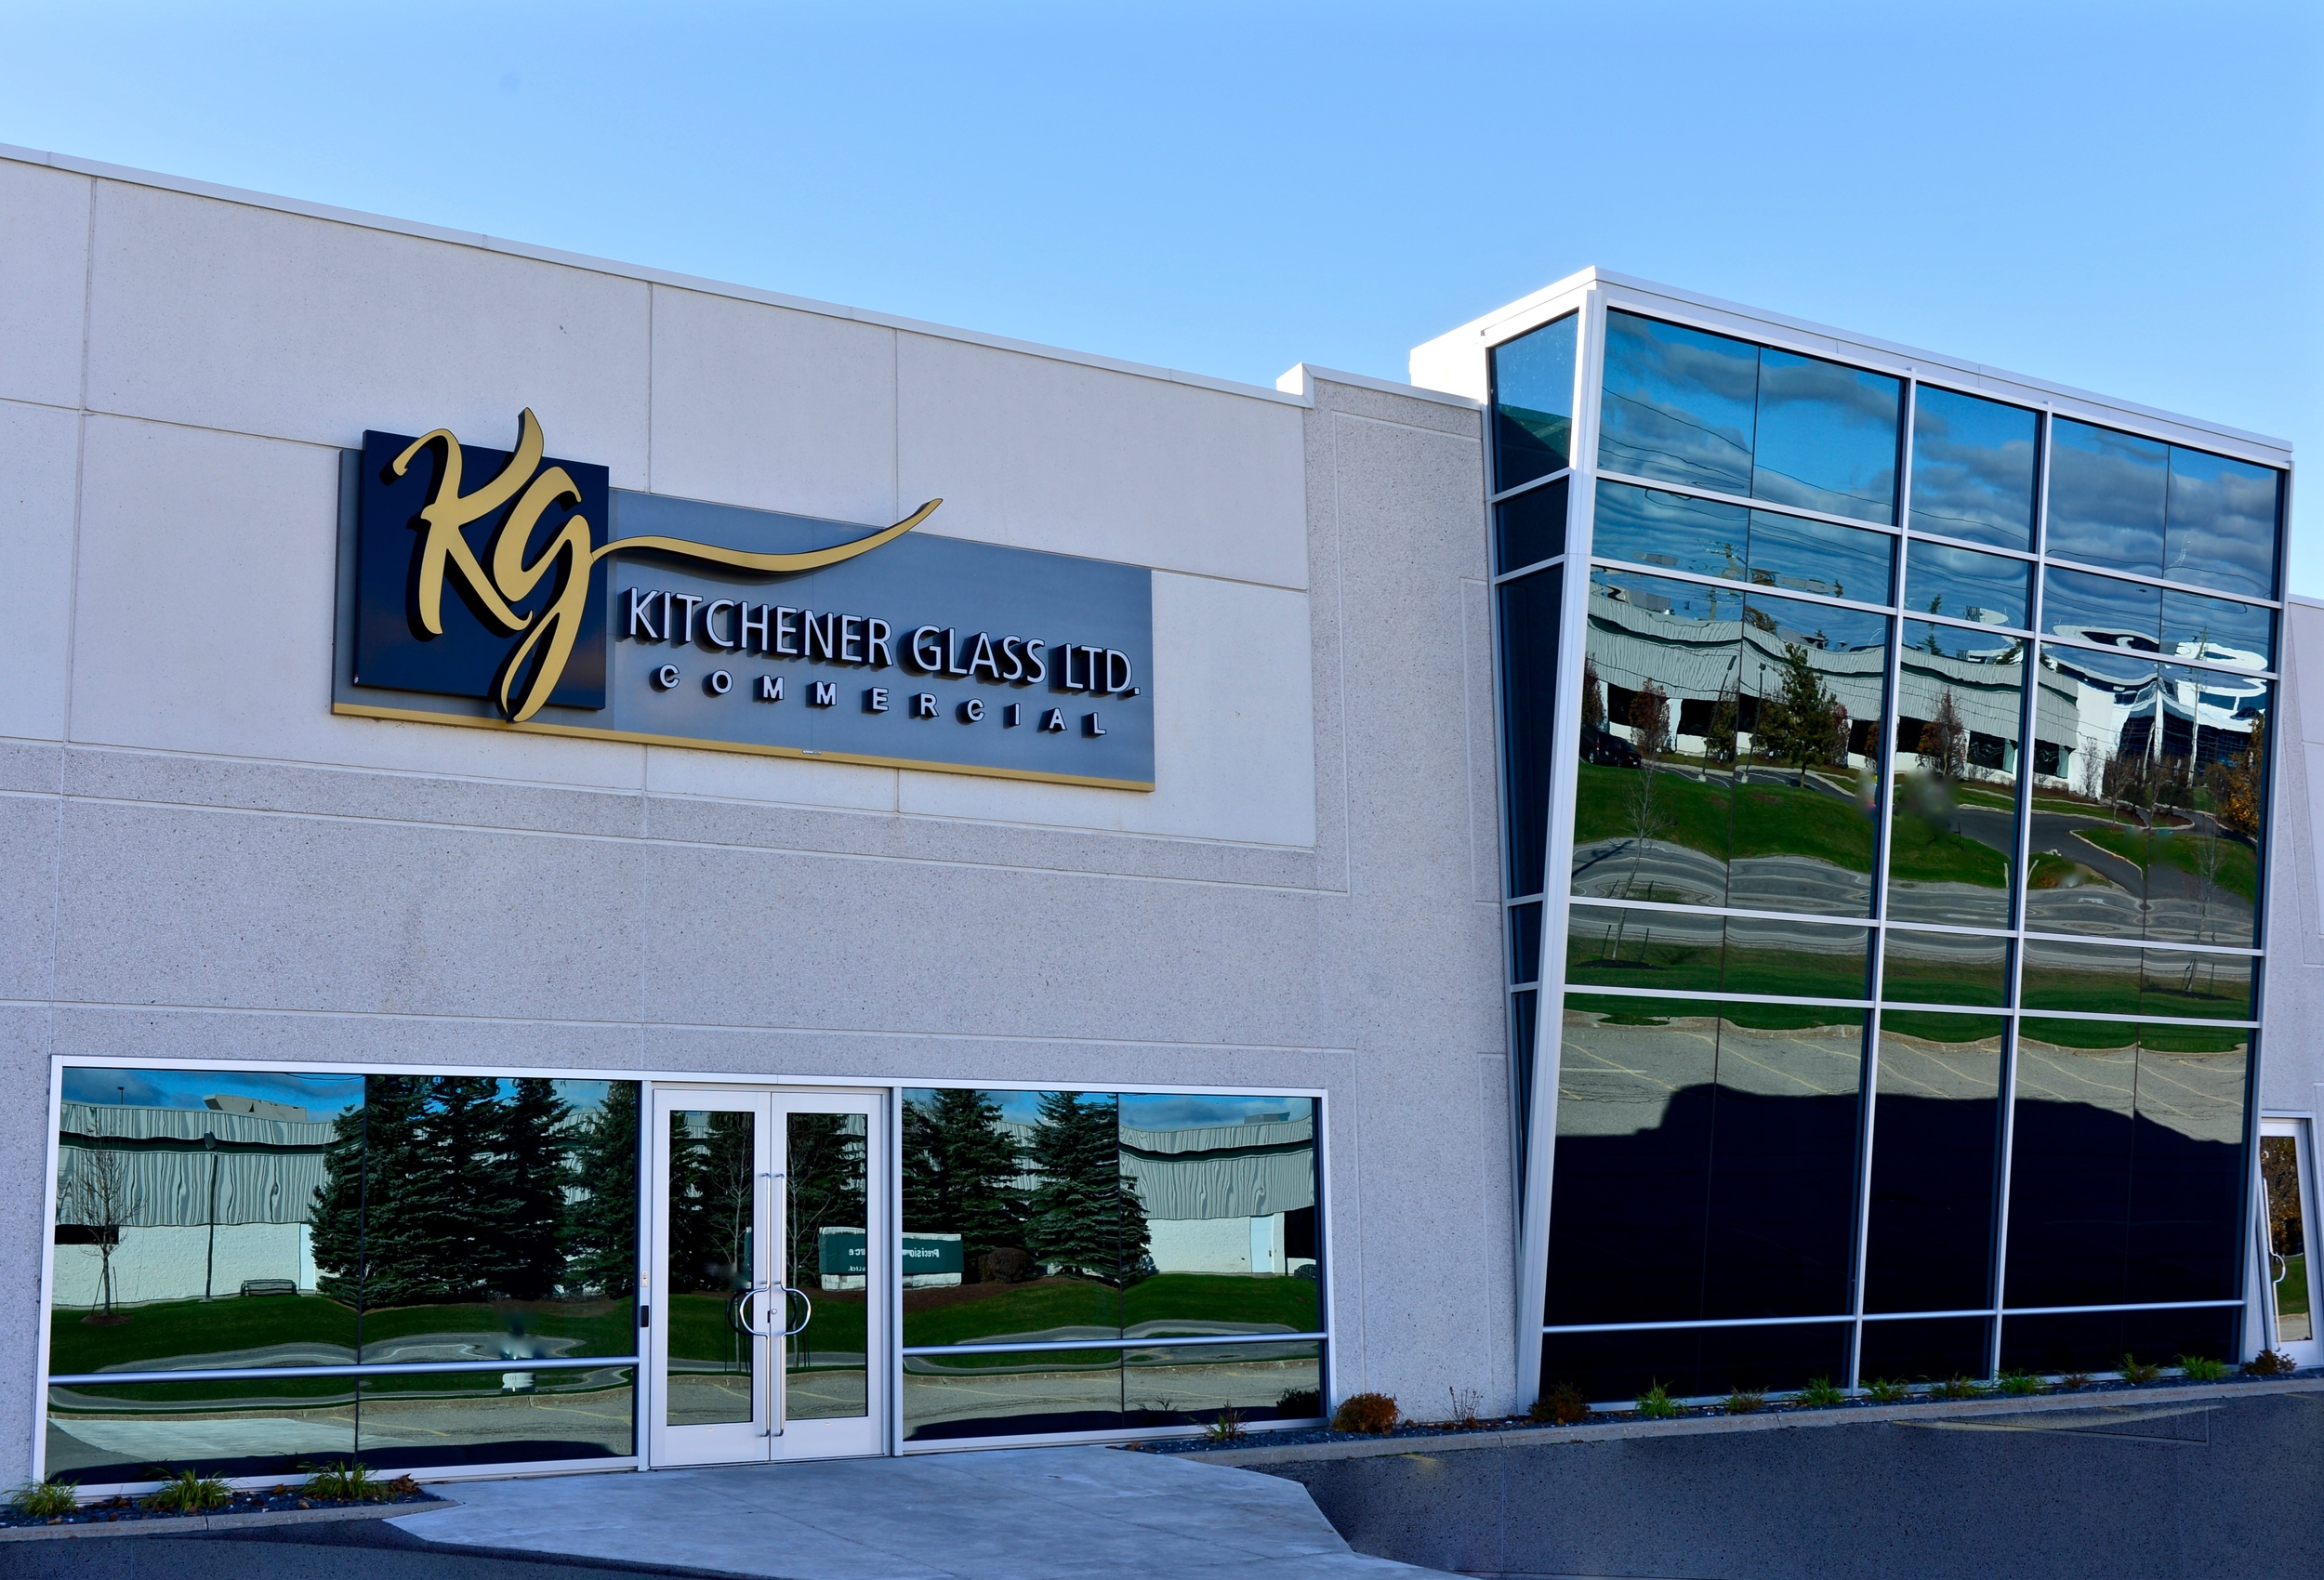 Kitchener Glass Ltd.